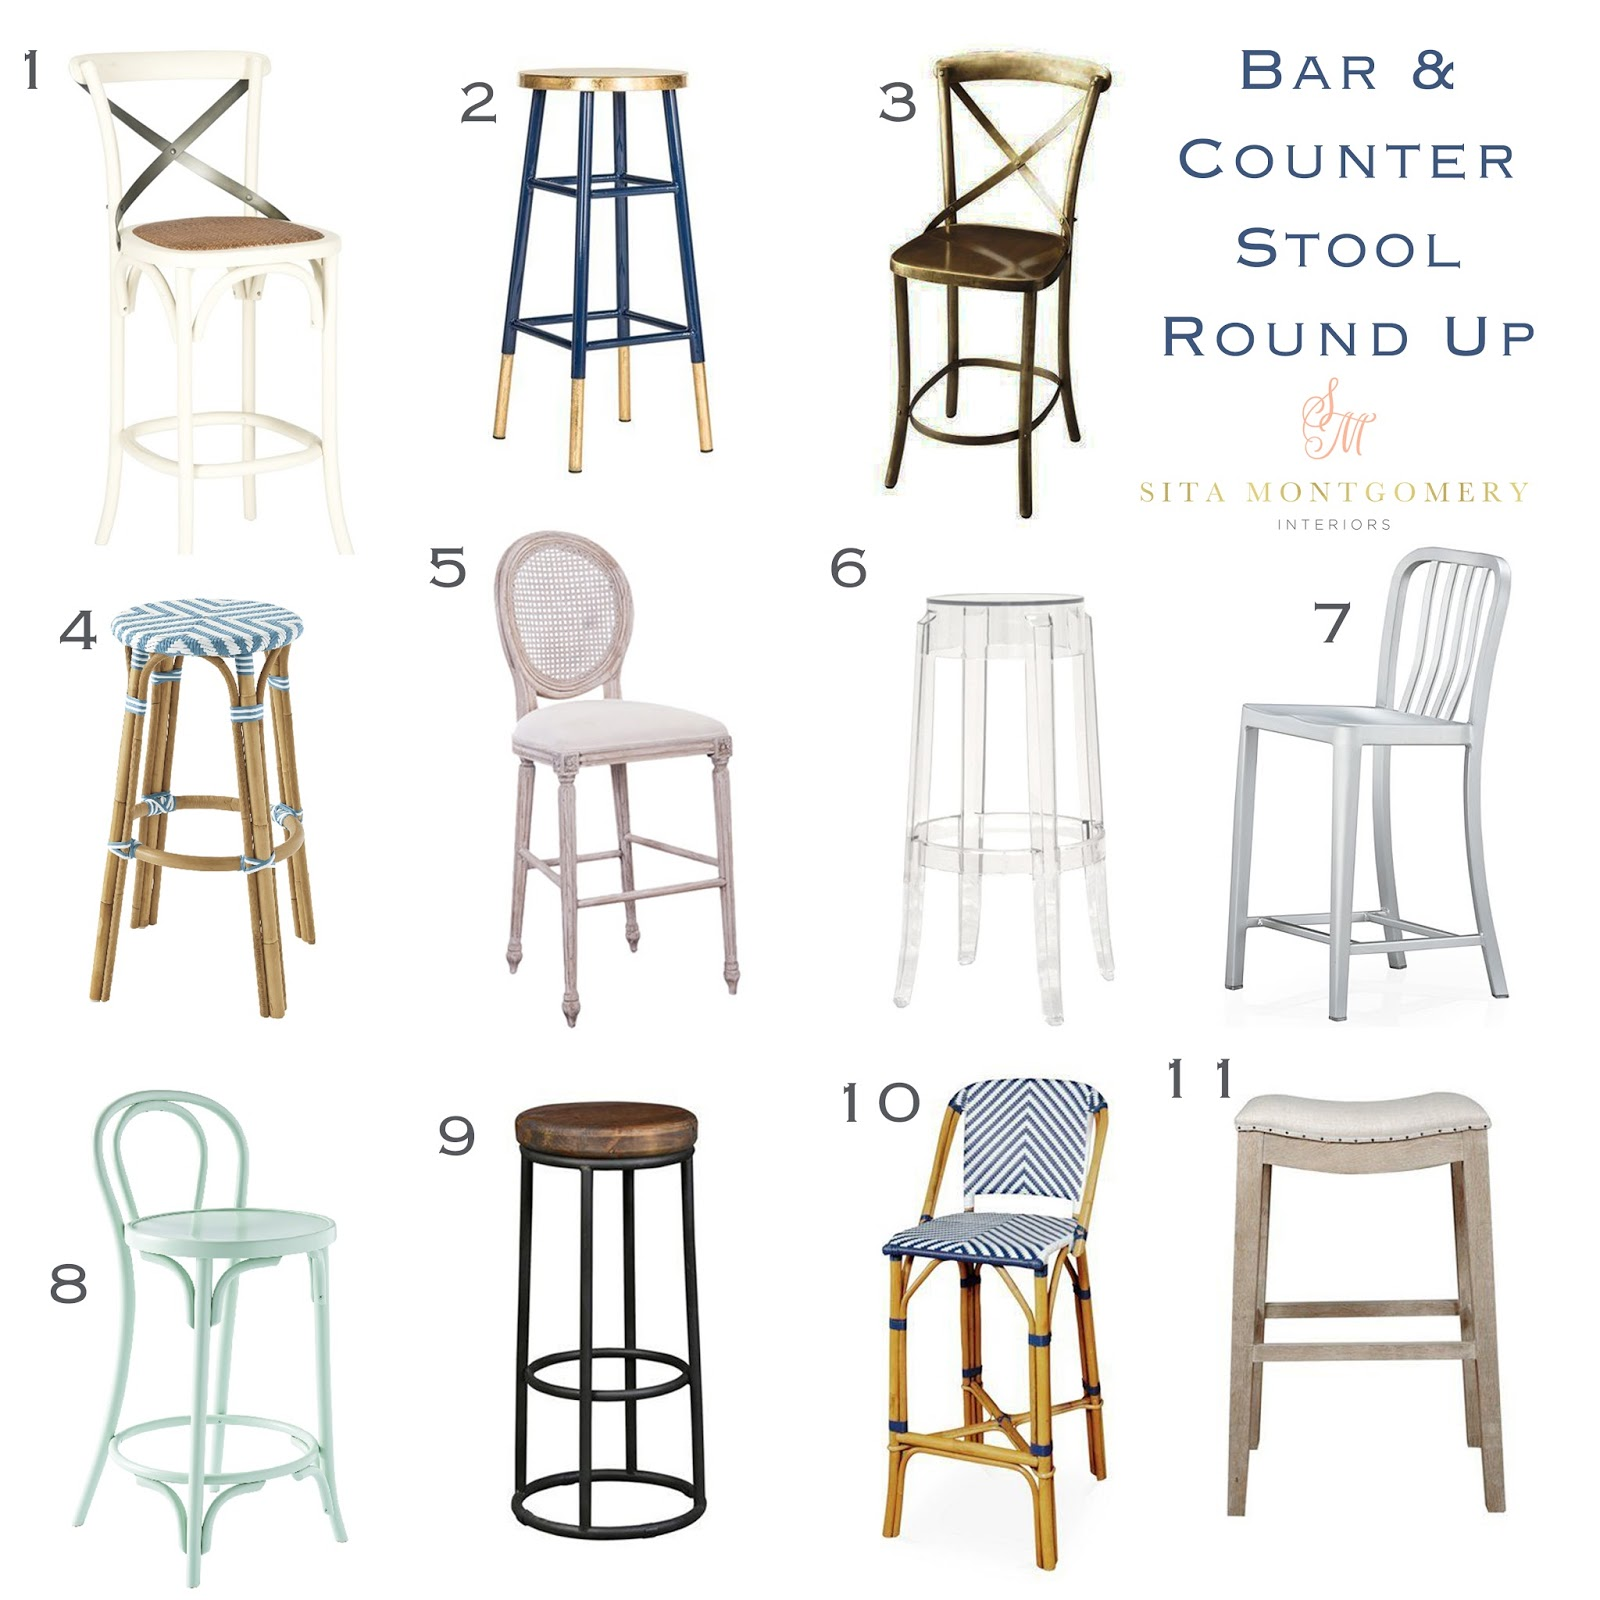 Bar and Counter Stool Round Up Sita Montgomery Interiors : stool round up from sitamontgomeryinteriors.com size 1600 x 1600 jpeg 249kB